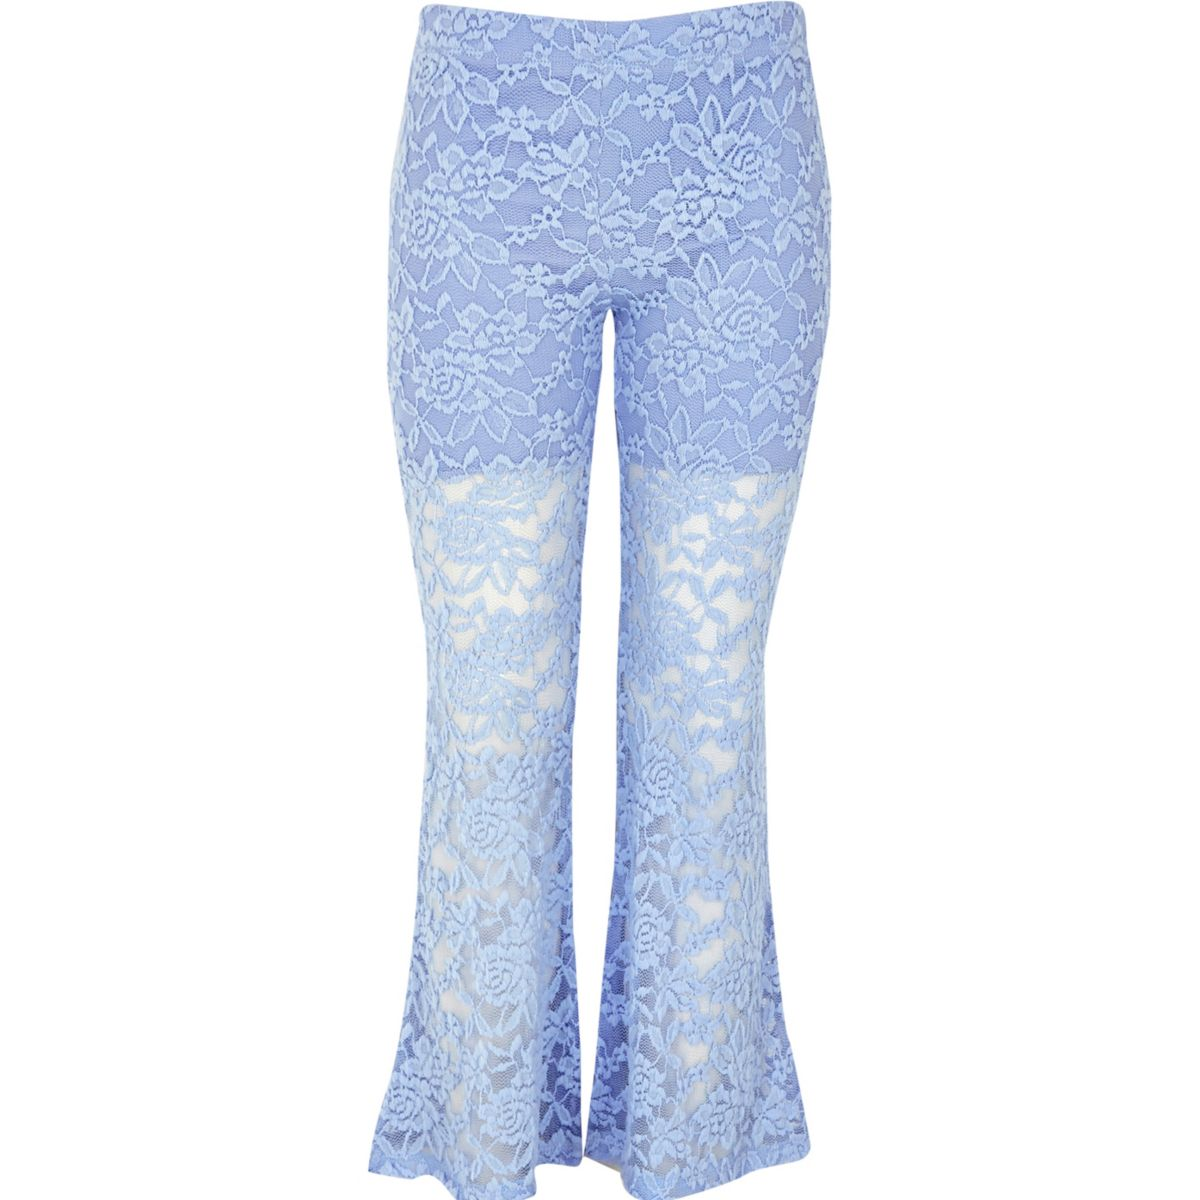 Hellblaue, geblümte Leggings